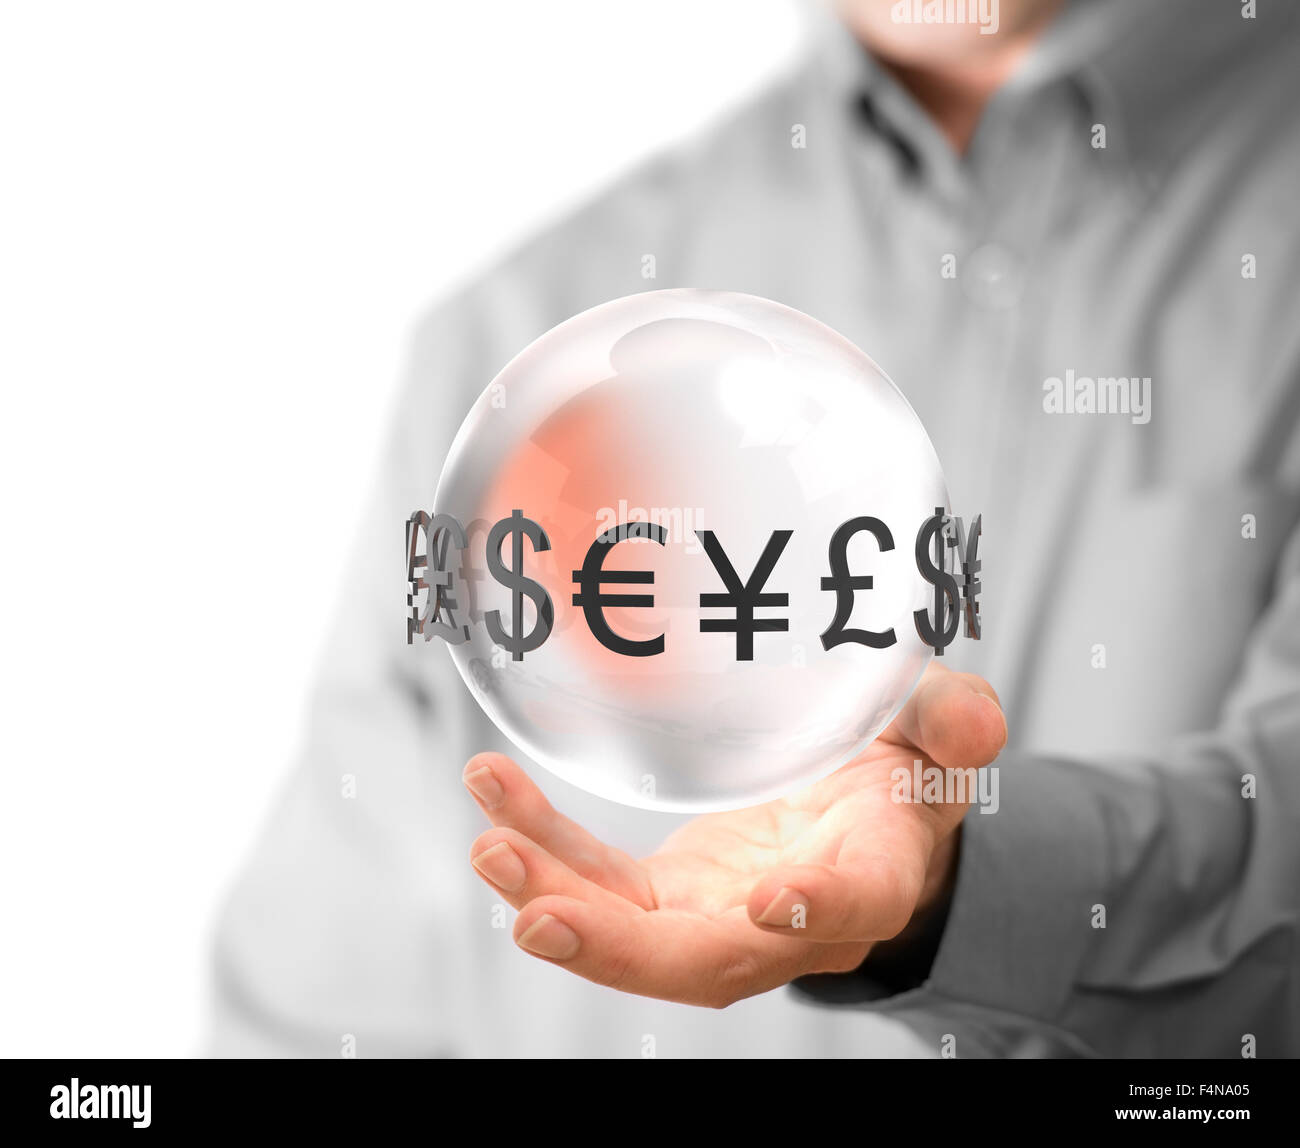 Man hand holding glass sphere with currencies around it. Concept image for illustration of currency exchange. - Stock Image